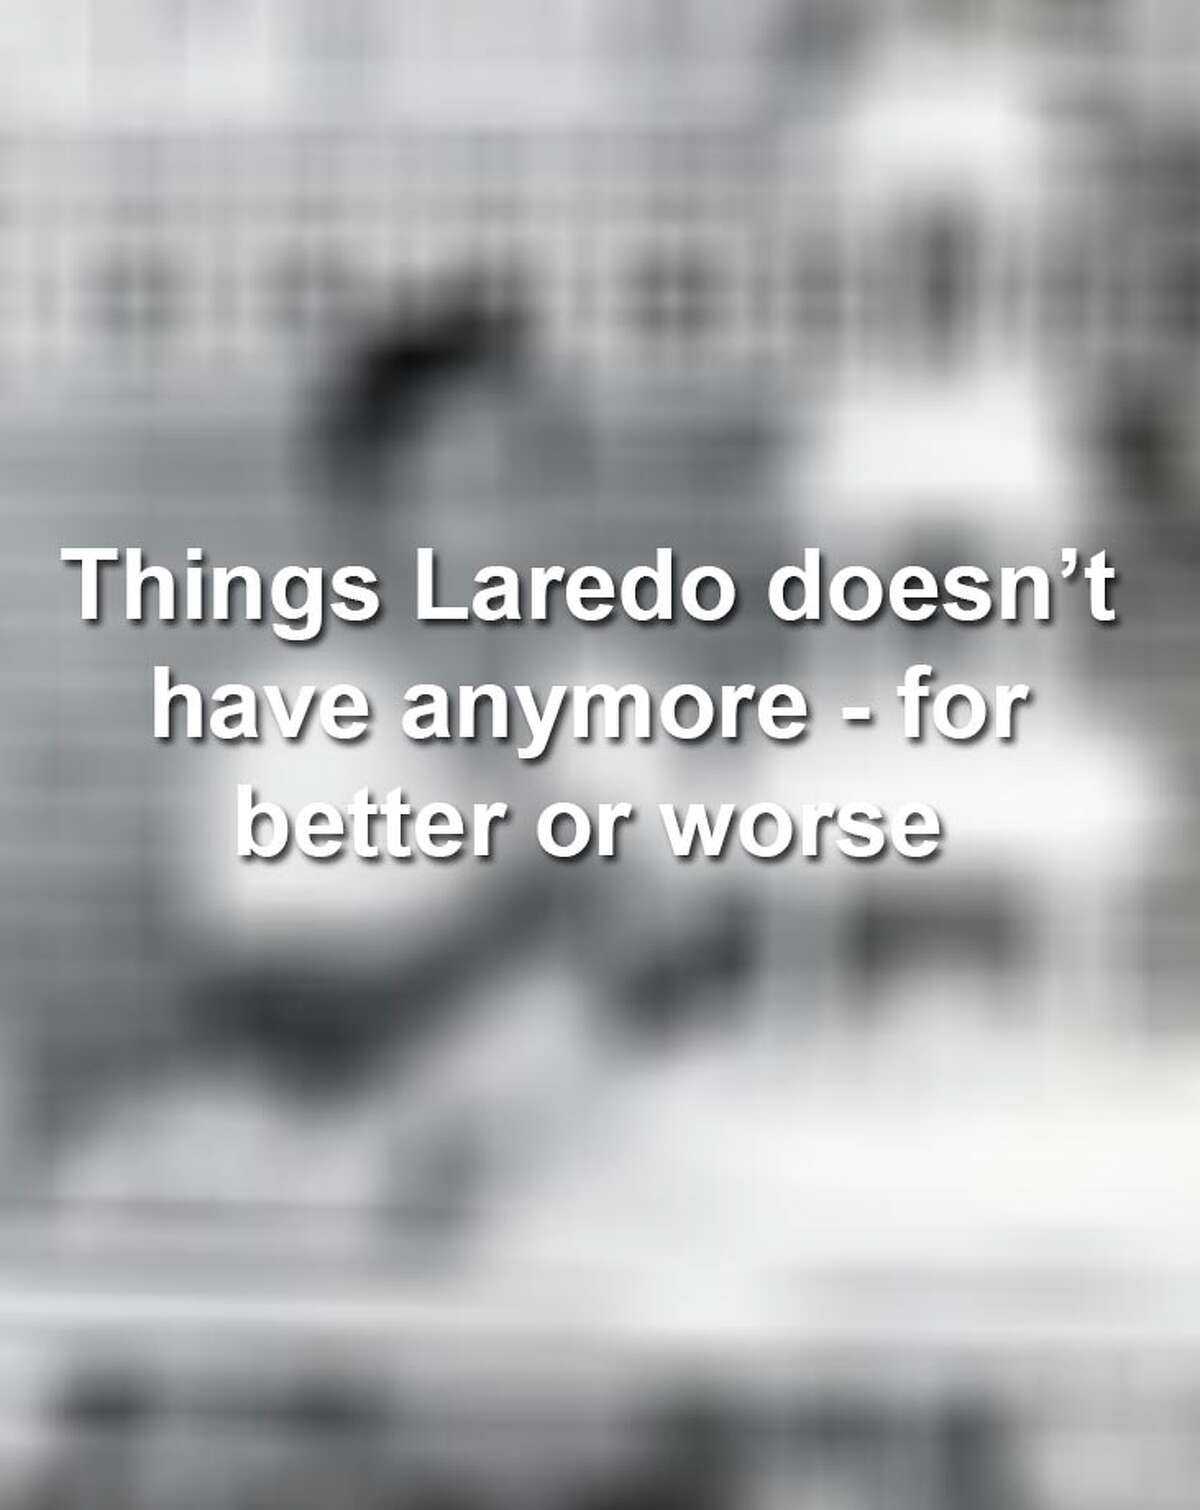 Keep scrolling to see things that have closed in Laredo over the years.